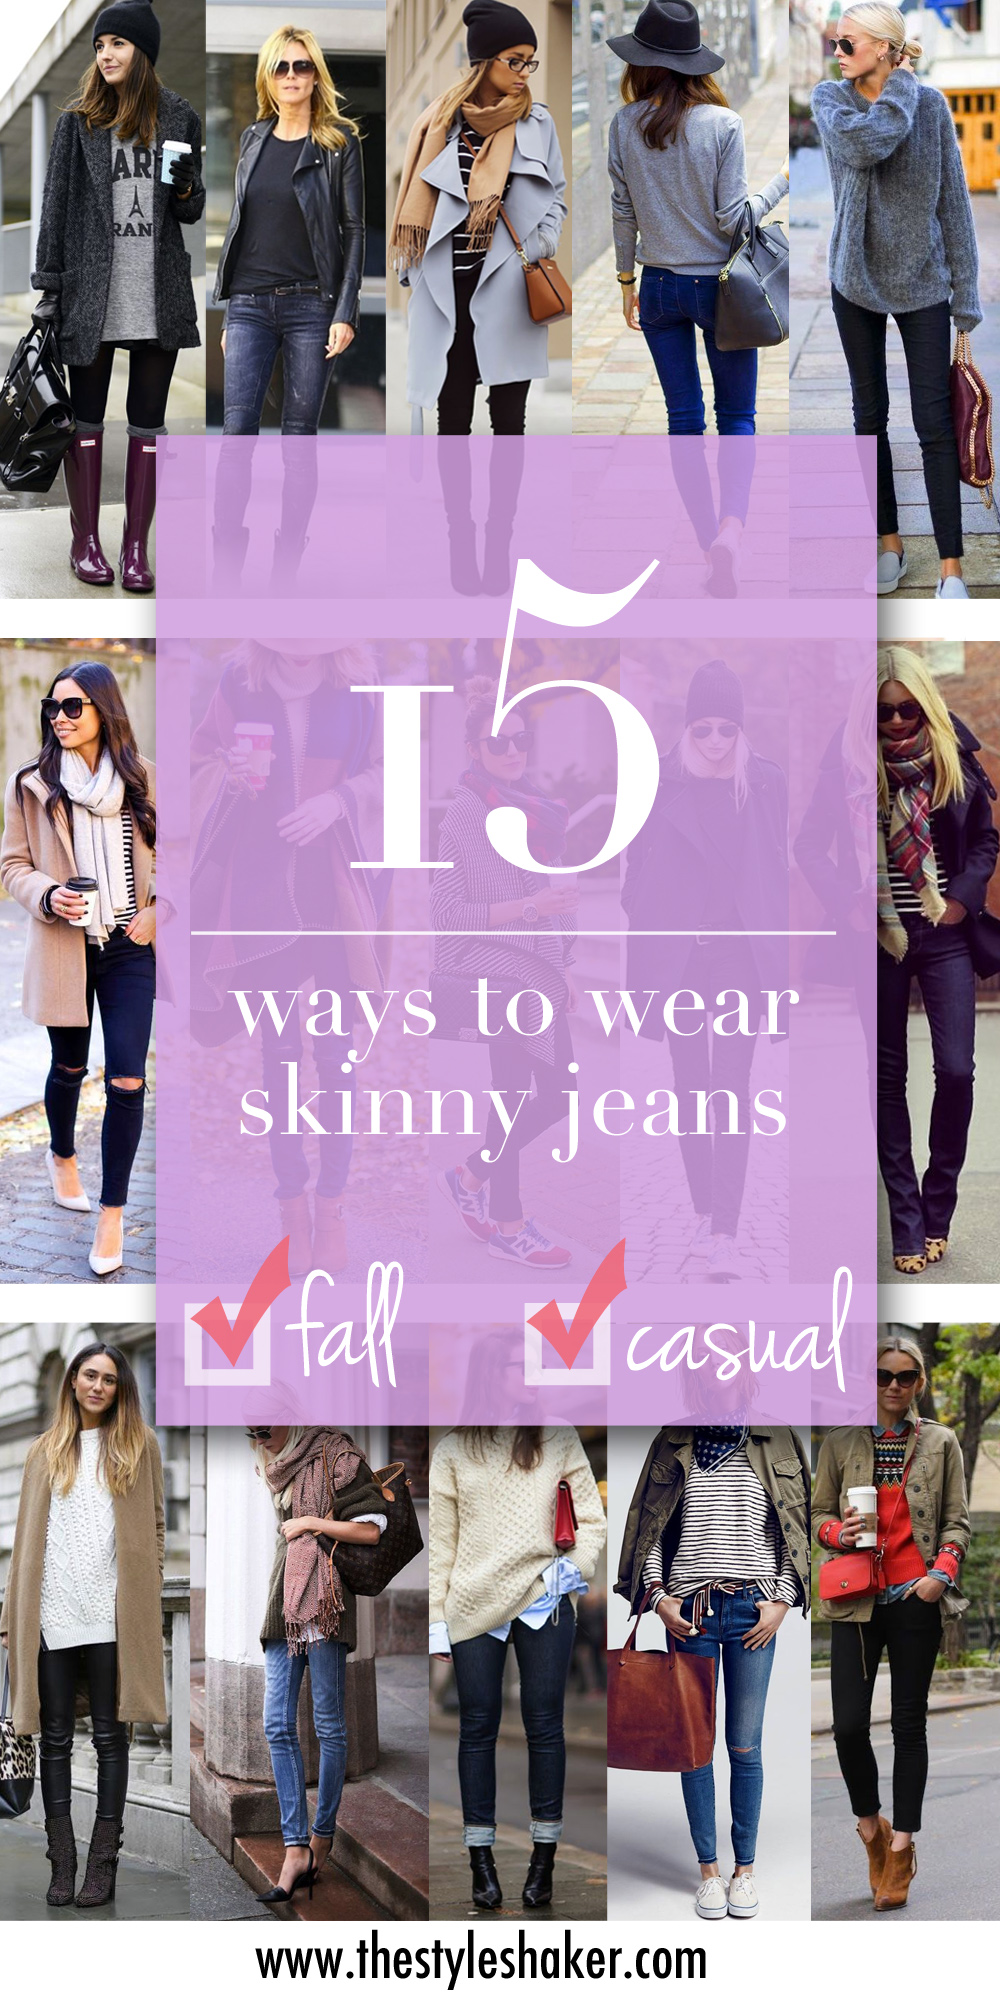 15 ways to wear skinny jeans during the weekend for Fall/Winter 2014